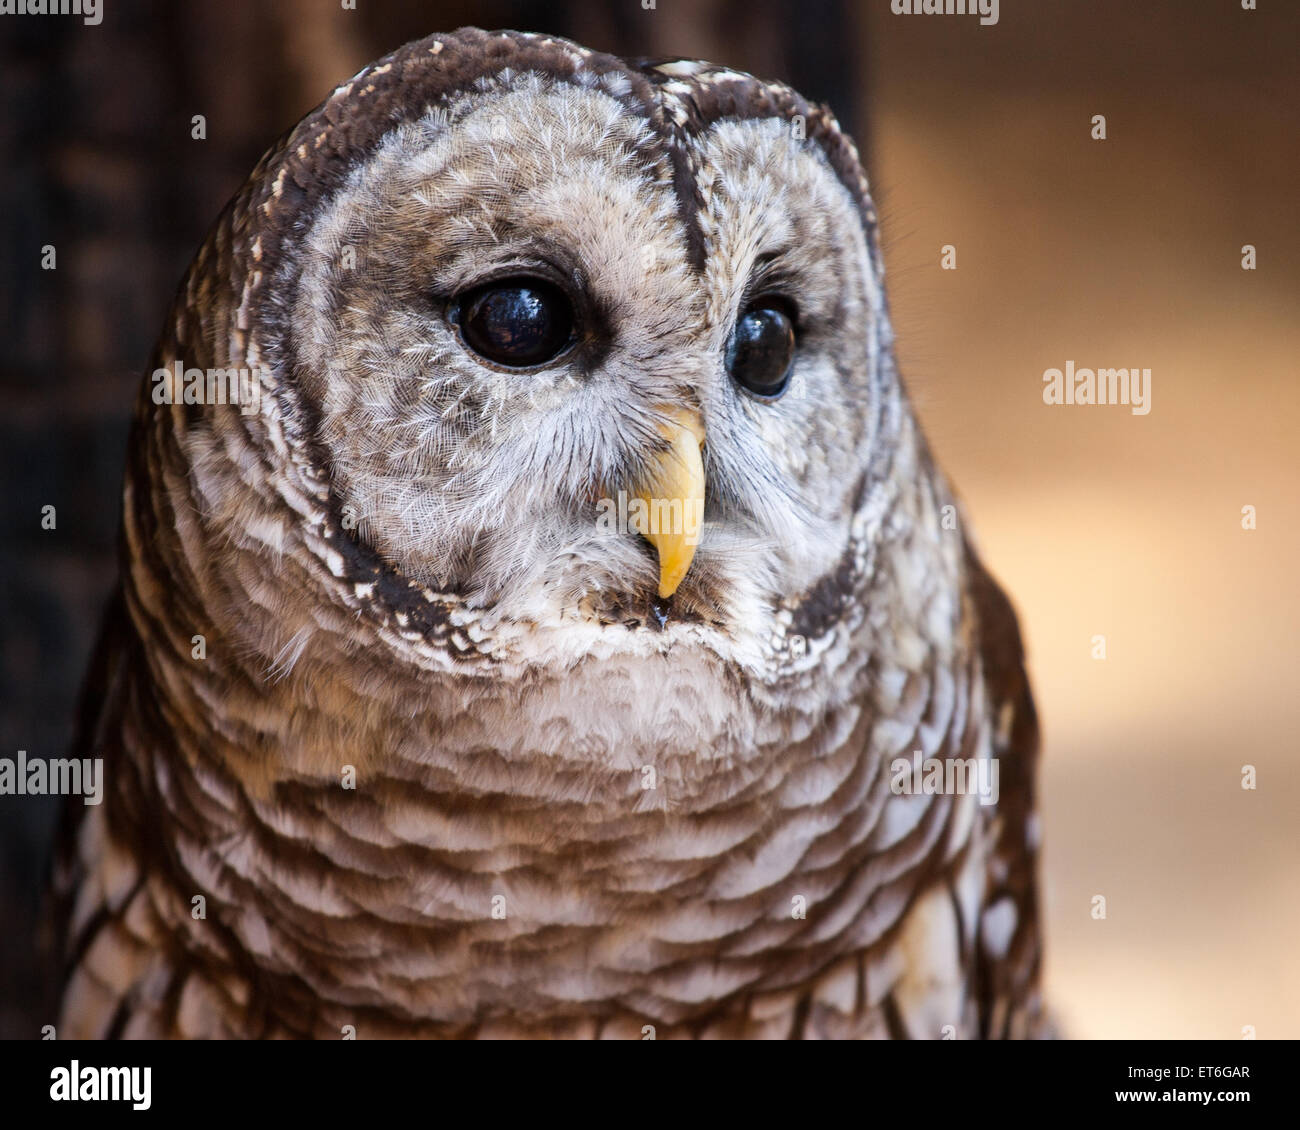 A portrait of a barred owl. - Stock Image